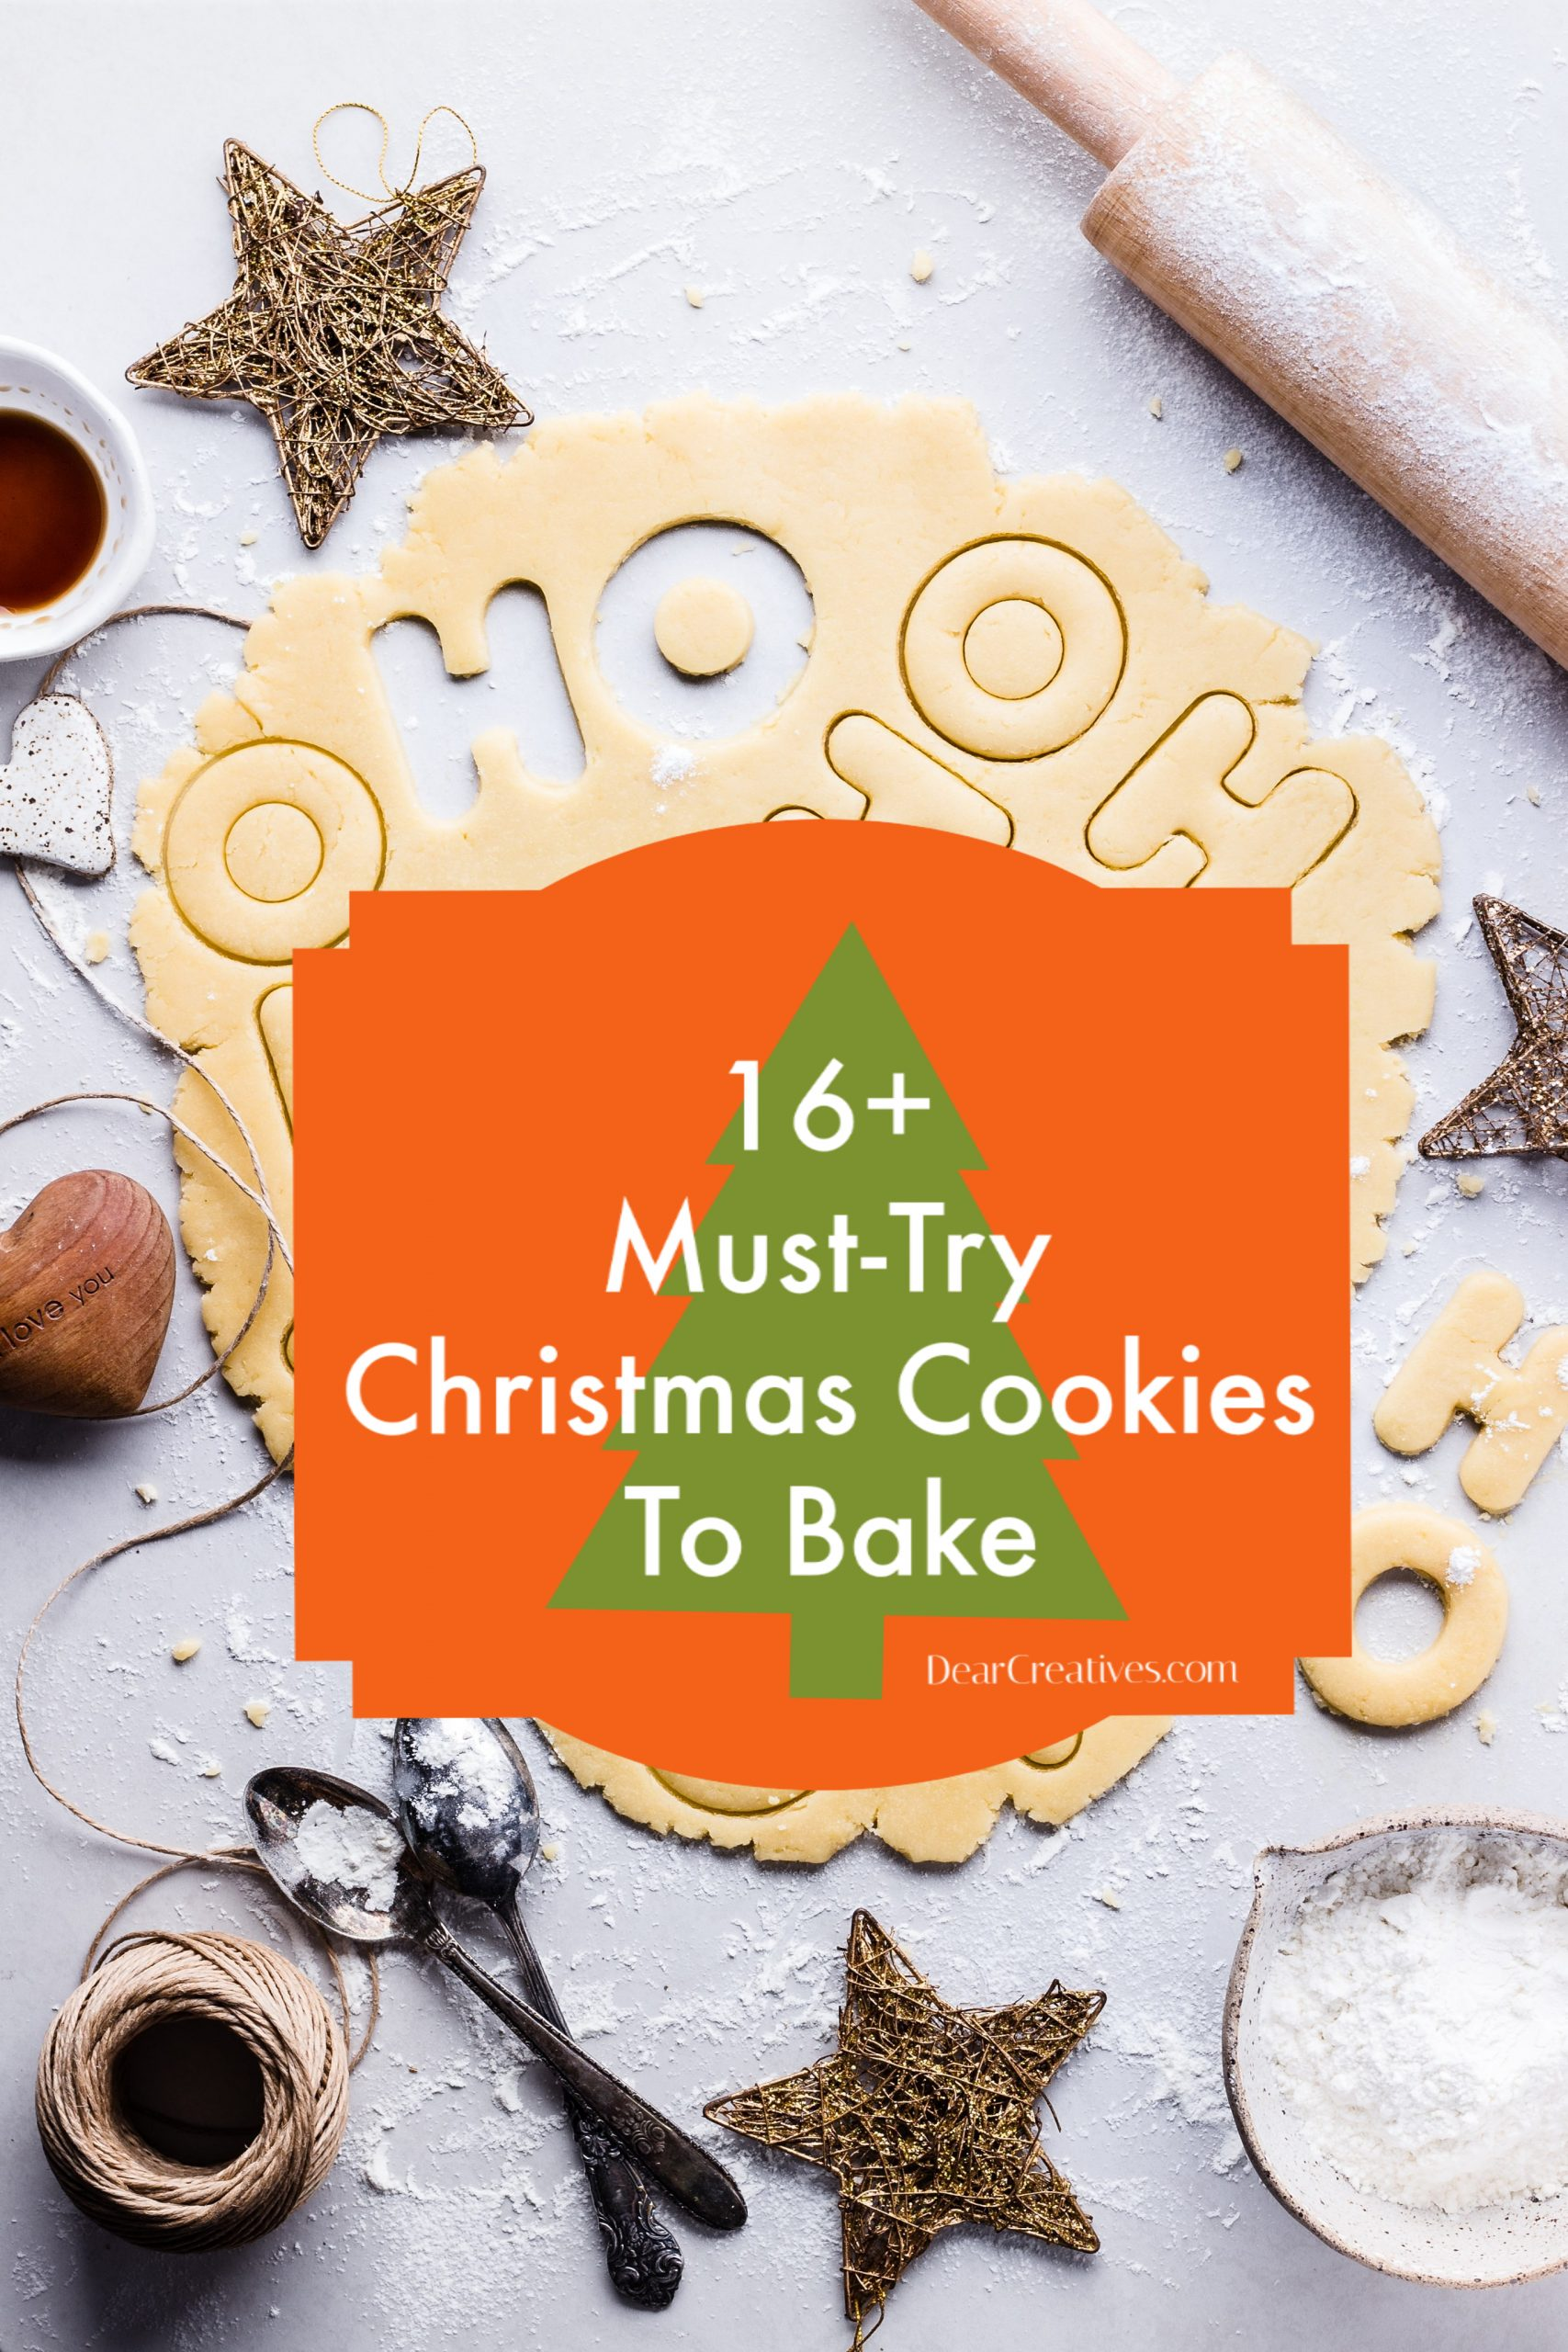 16+ Santa Cookies Recipes And Treats!